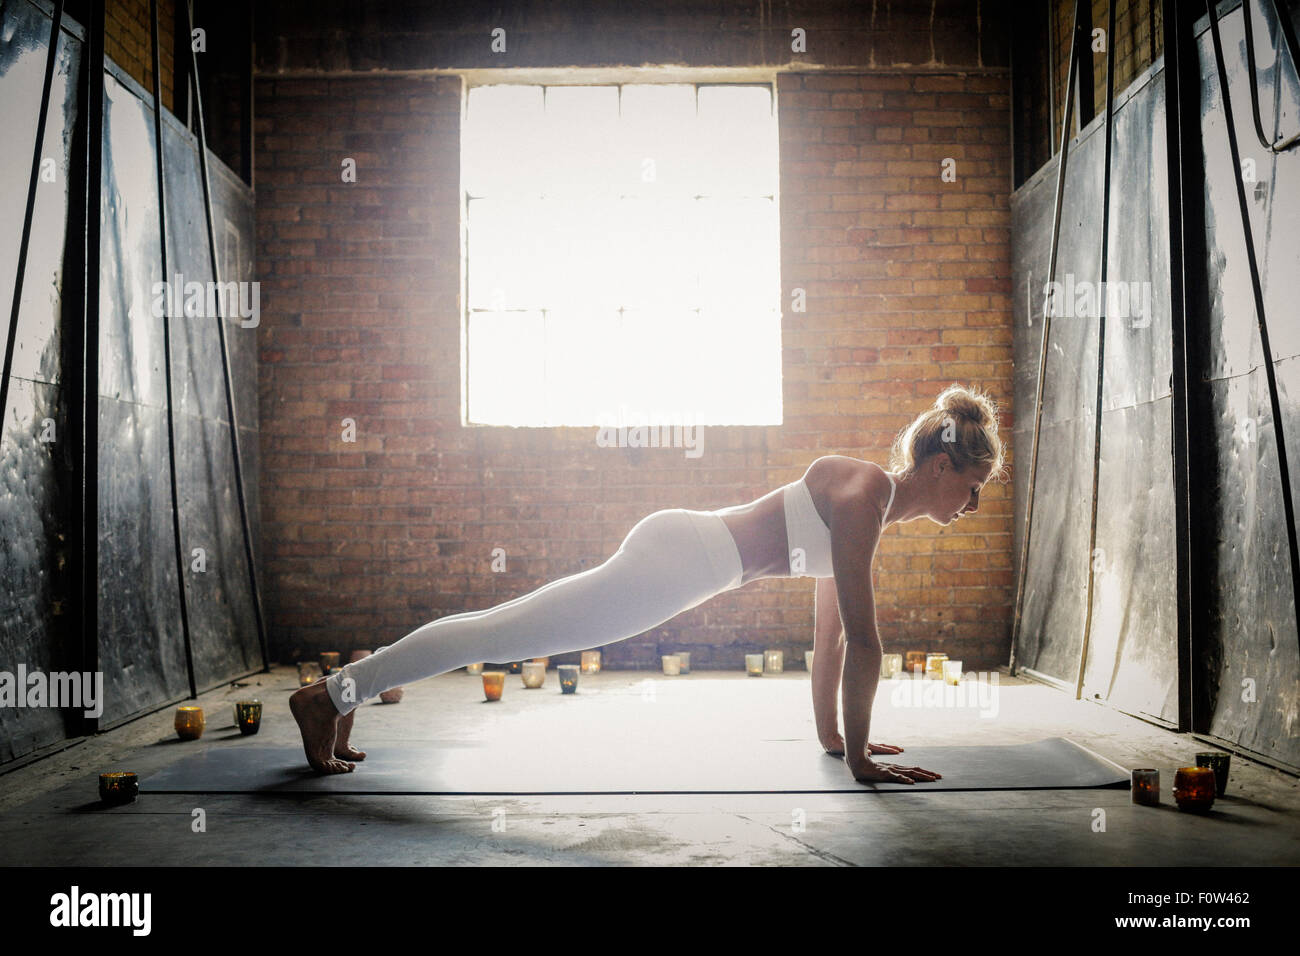 A blonde woman, in a white crop top and leggings, bending down on the floor surrounded by candles, doing yoga. - Stock Image